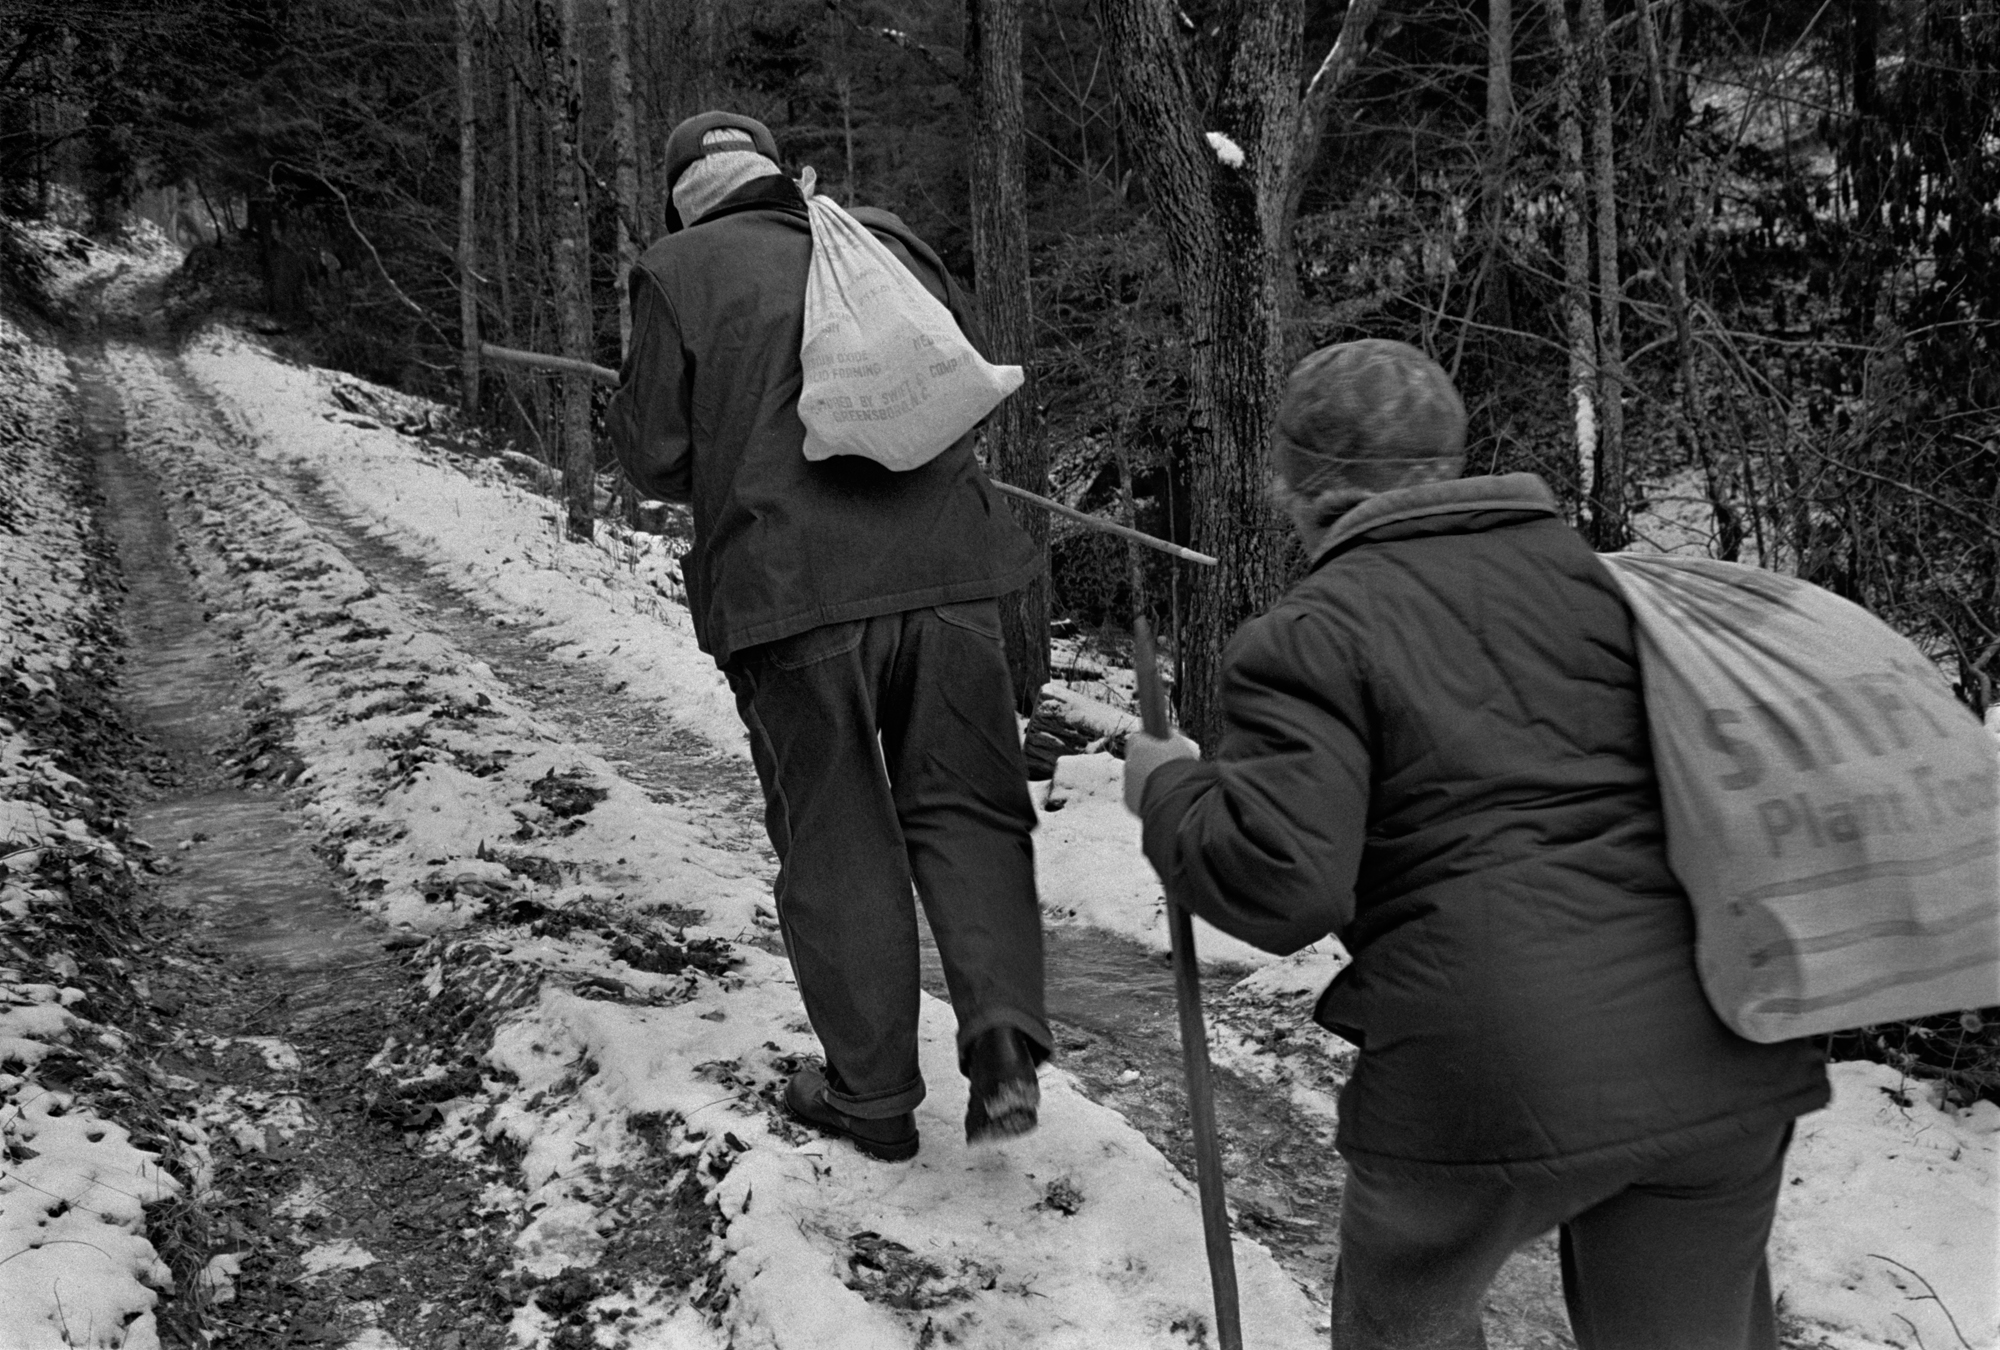 Paul and Grace Henderson Walking groceries to their home in Wilson Cove, Big Pine, Madison County, NC 1990.